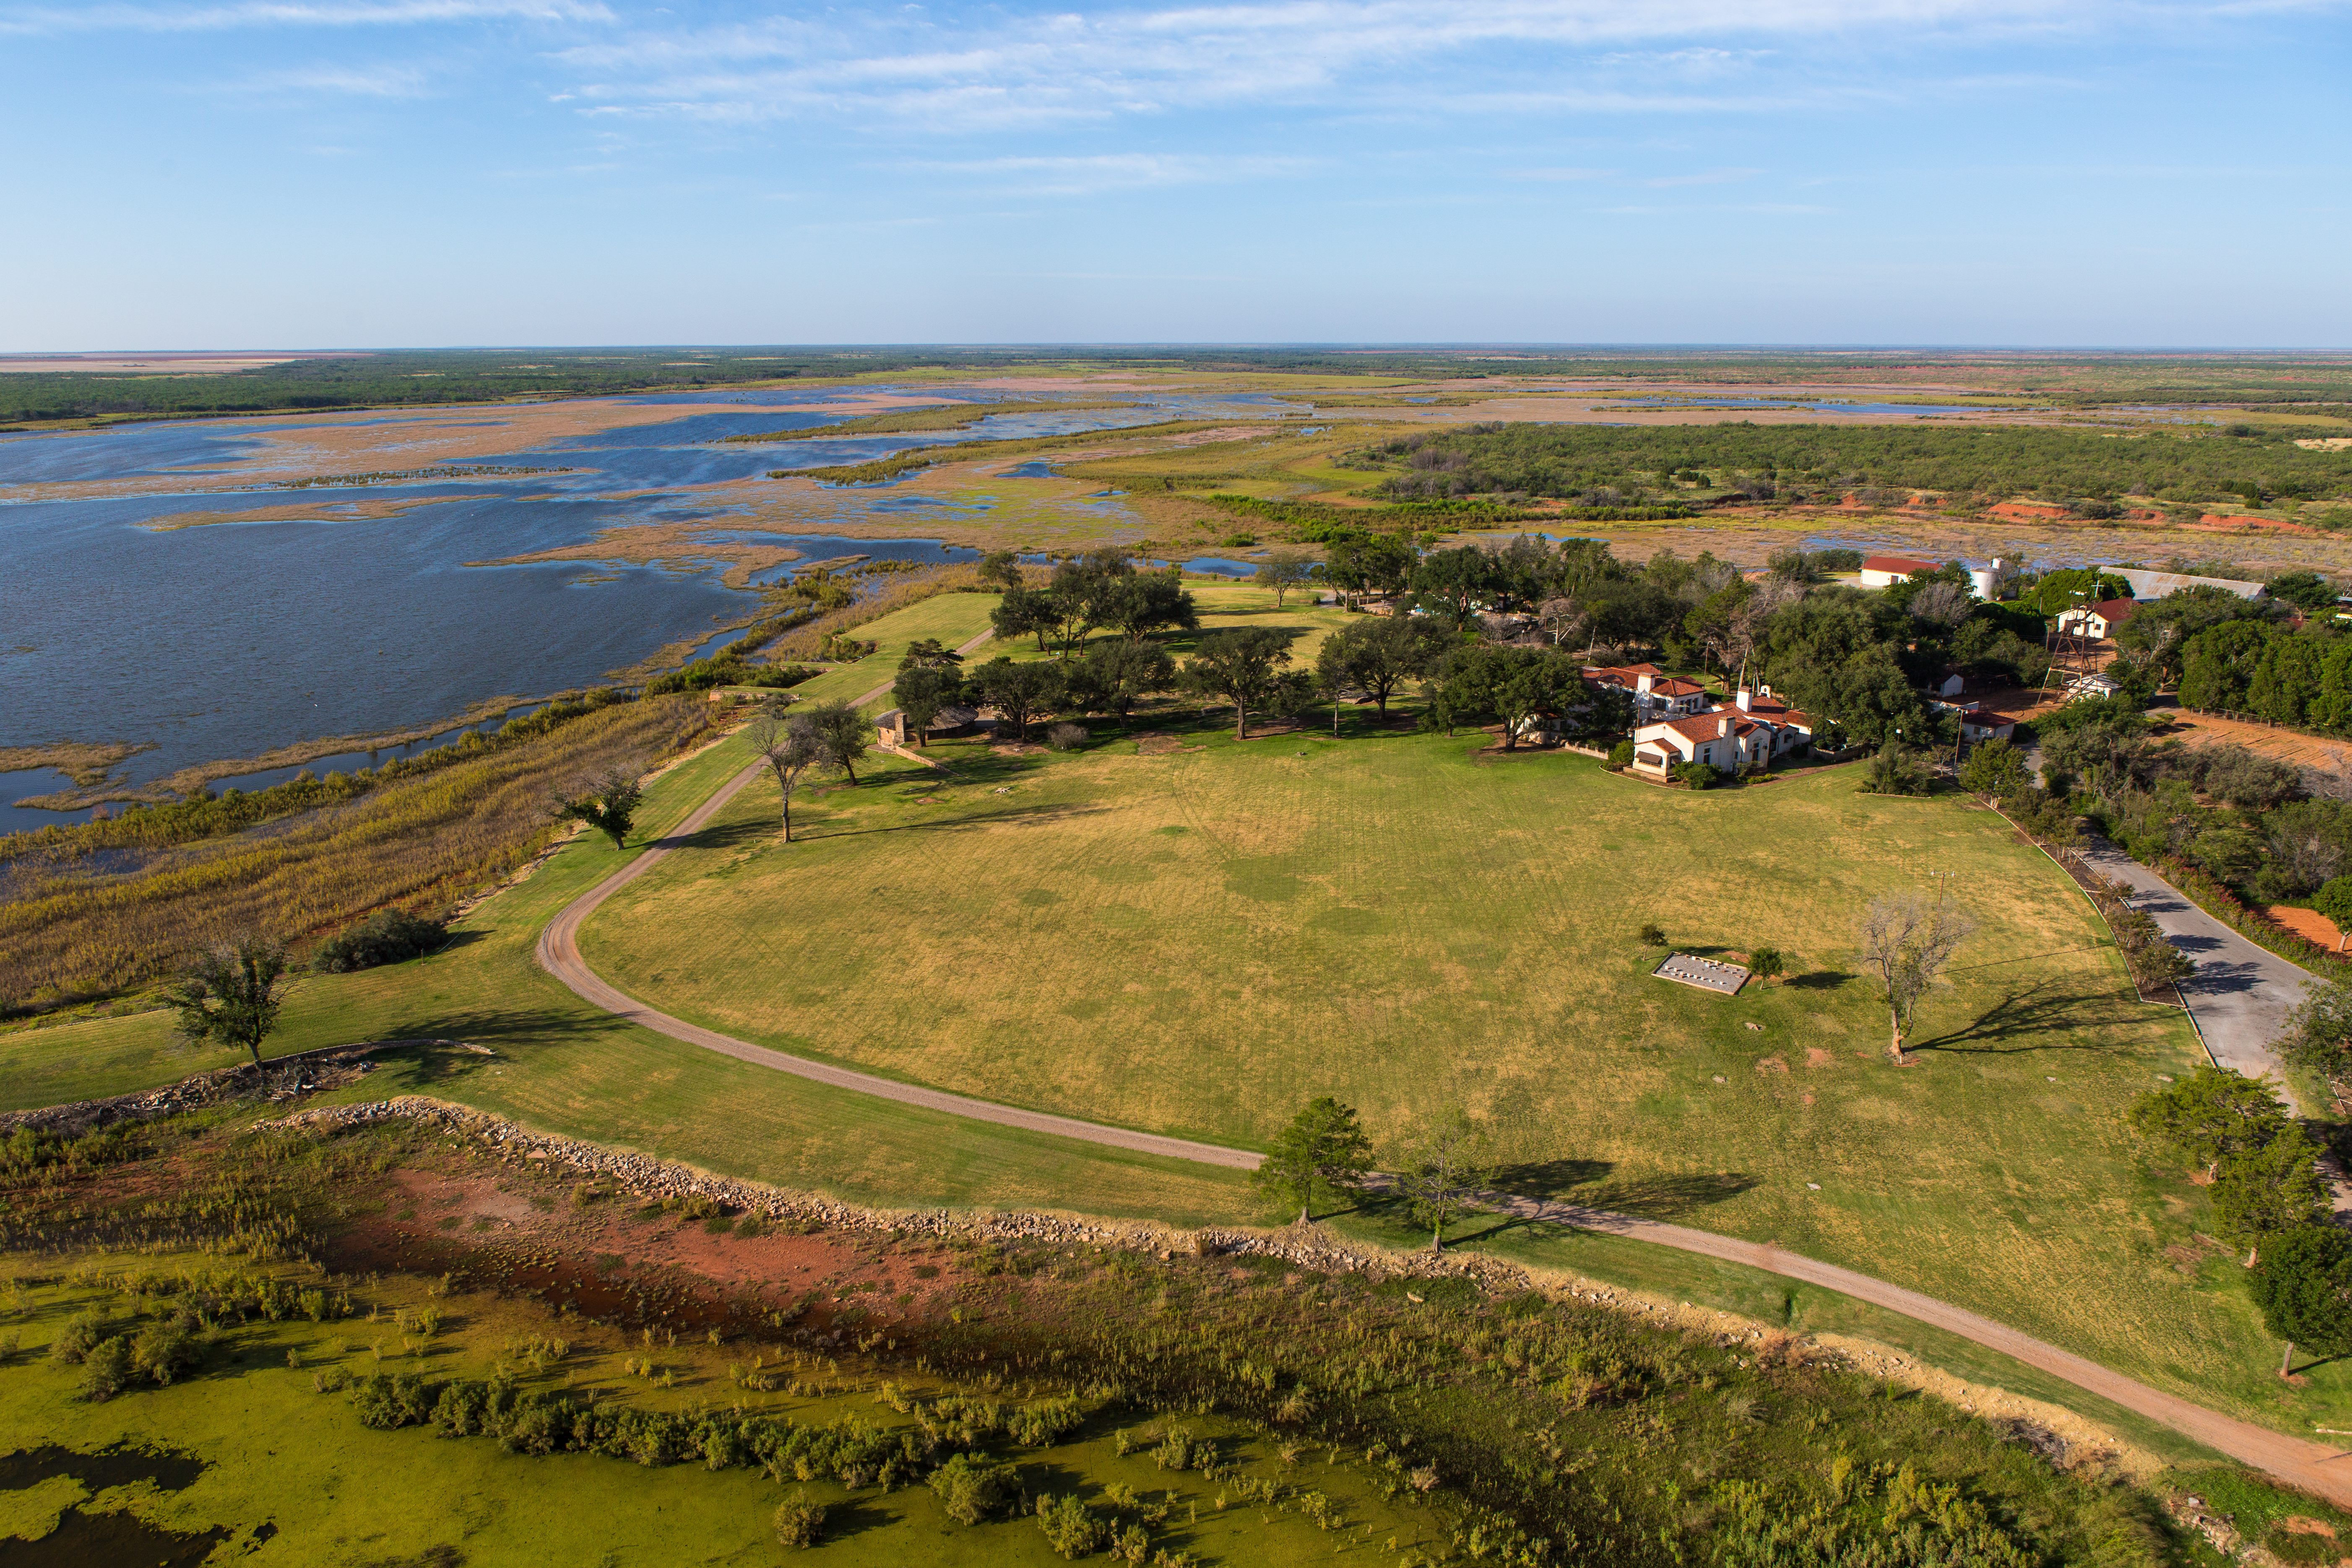 Texan ranch is the world 39 s most expensive property after being put up for sale for 460 million - The waggoner ranch the worlds most expensive estate ...